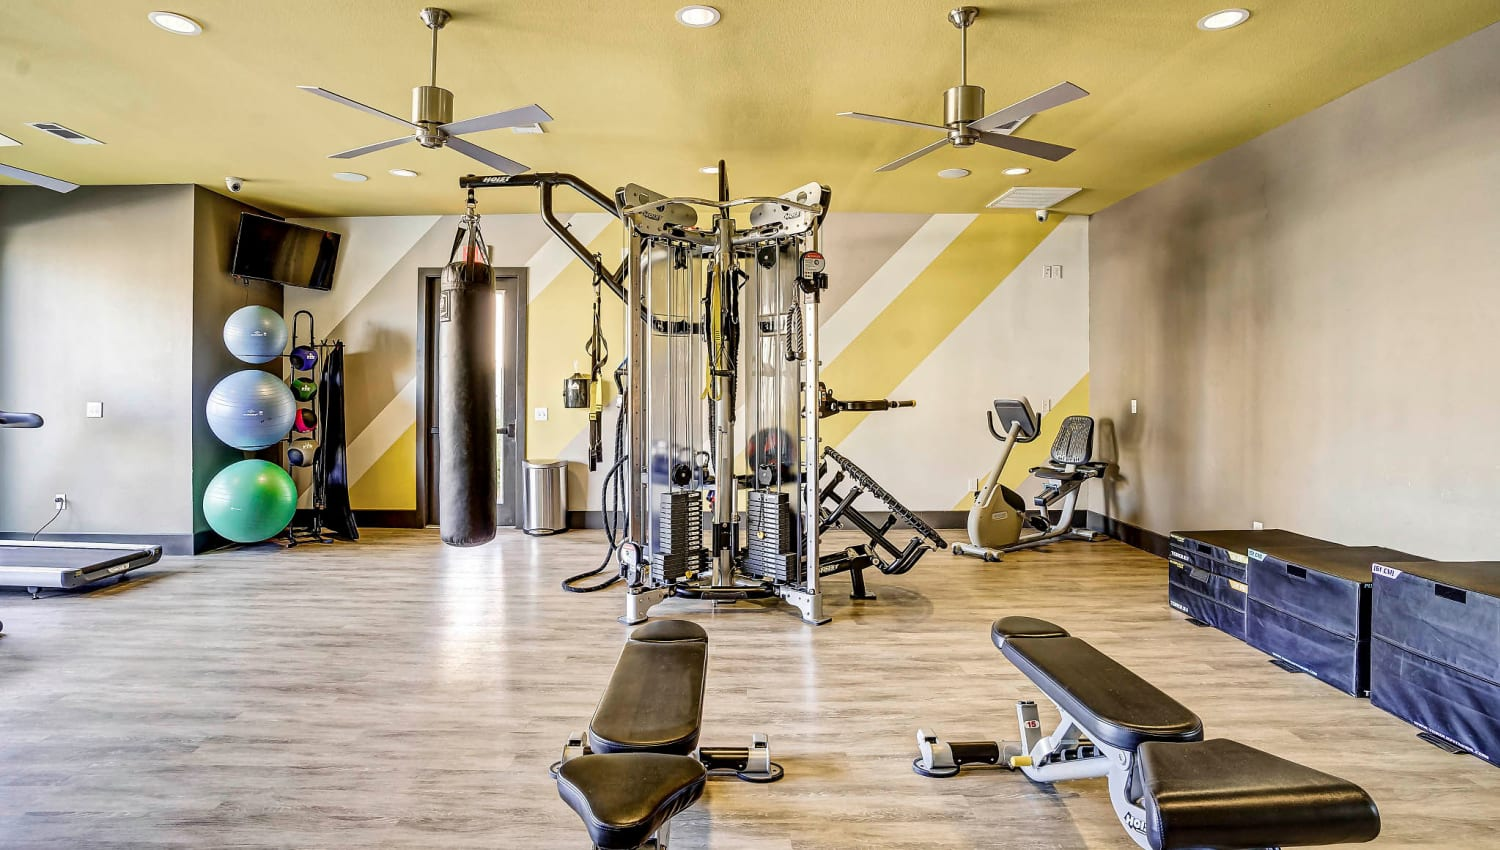 Well-equipped onsite fitness center at Sundance Creek in Midland, Texas